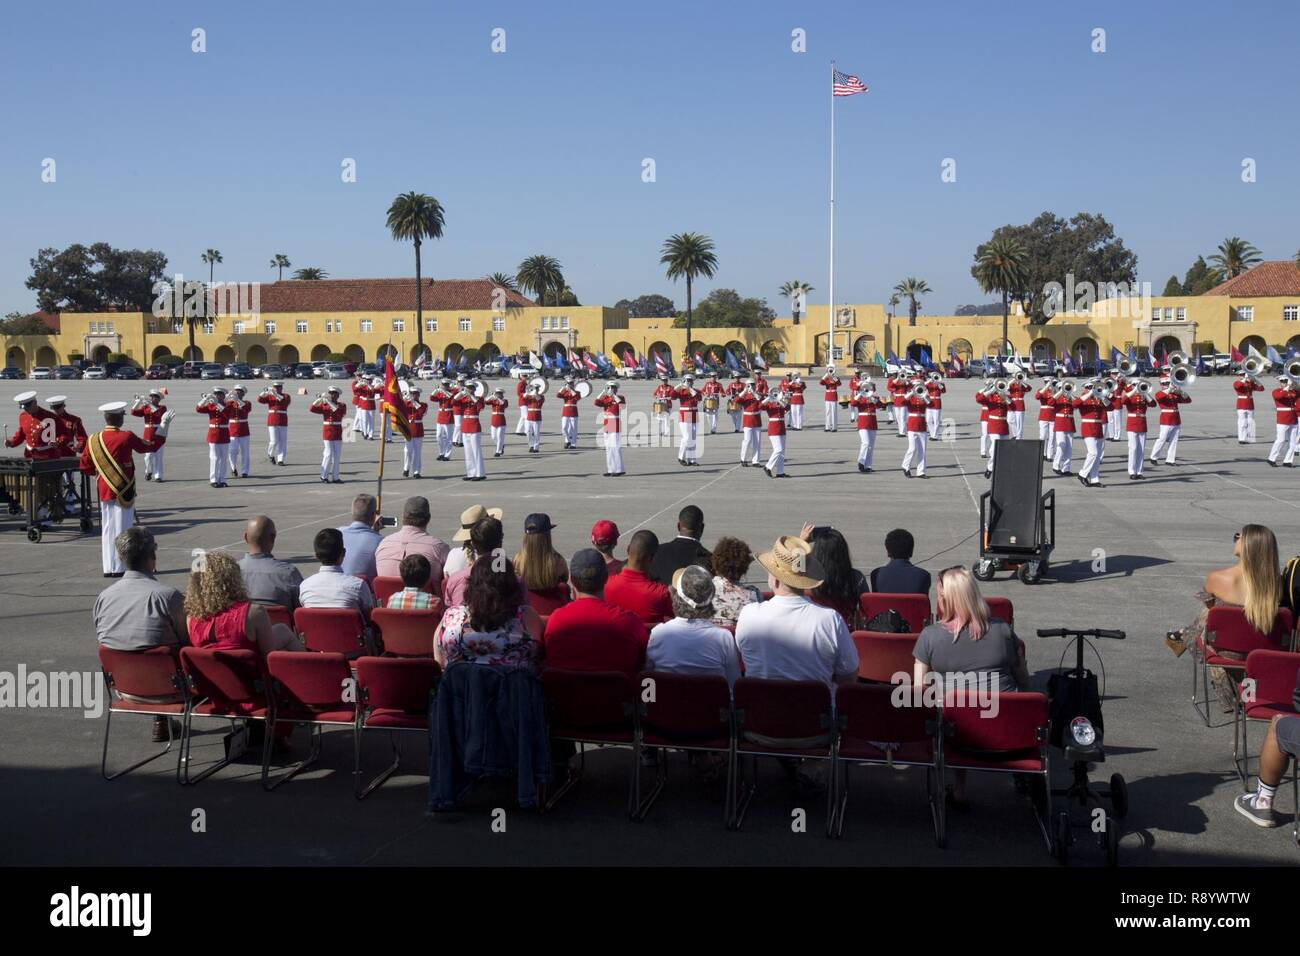 U.S. service members, friends, and family attend a Battle Color ceremony at Marine Corps Recruit Depot San Diego, Calif., March 11, 2017. The ceremony included a performance by the Marine Drum and Bugle Corps, the Silent Drill Platoon, and the Marine Corps Color Guard. Stock Photo